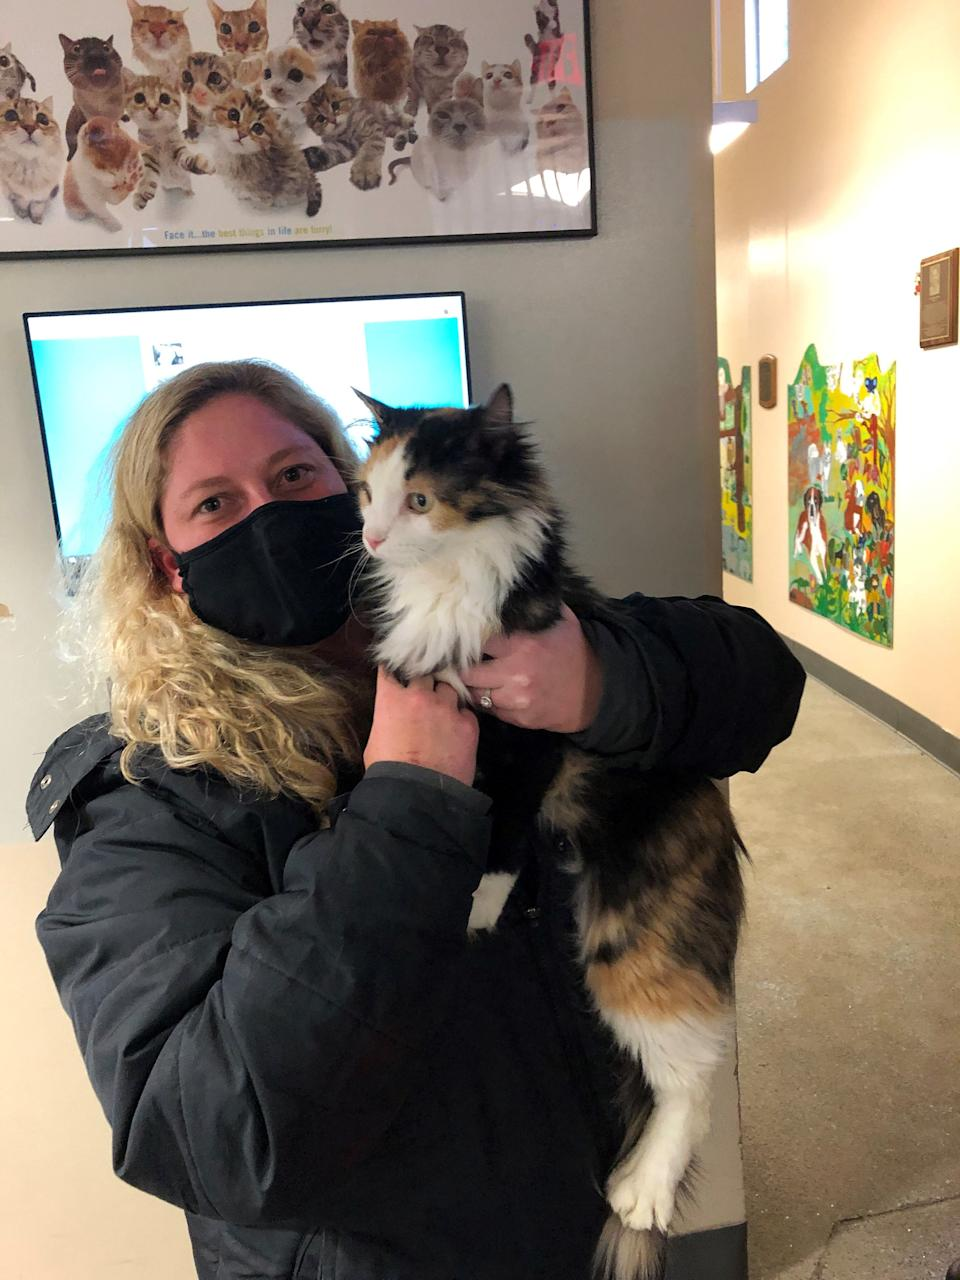 Kara Hanlon of Des Moines reunited with her cat Lottie, who got lost in 2016, thanks to the Animal Rescue League and Lottie's microchip.